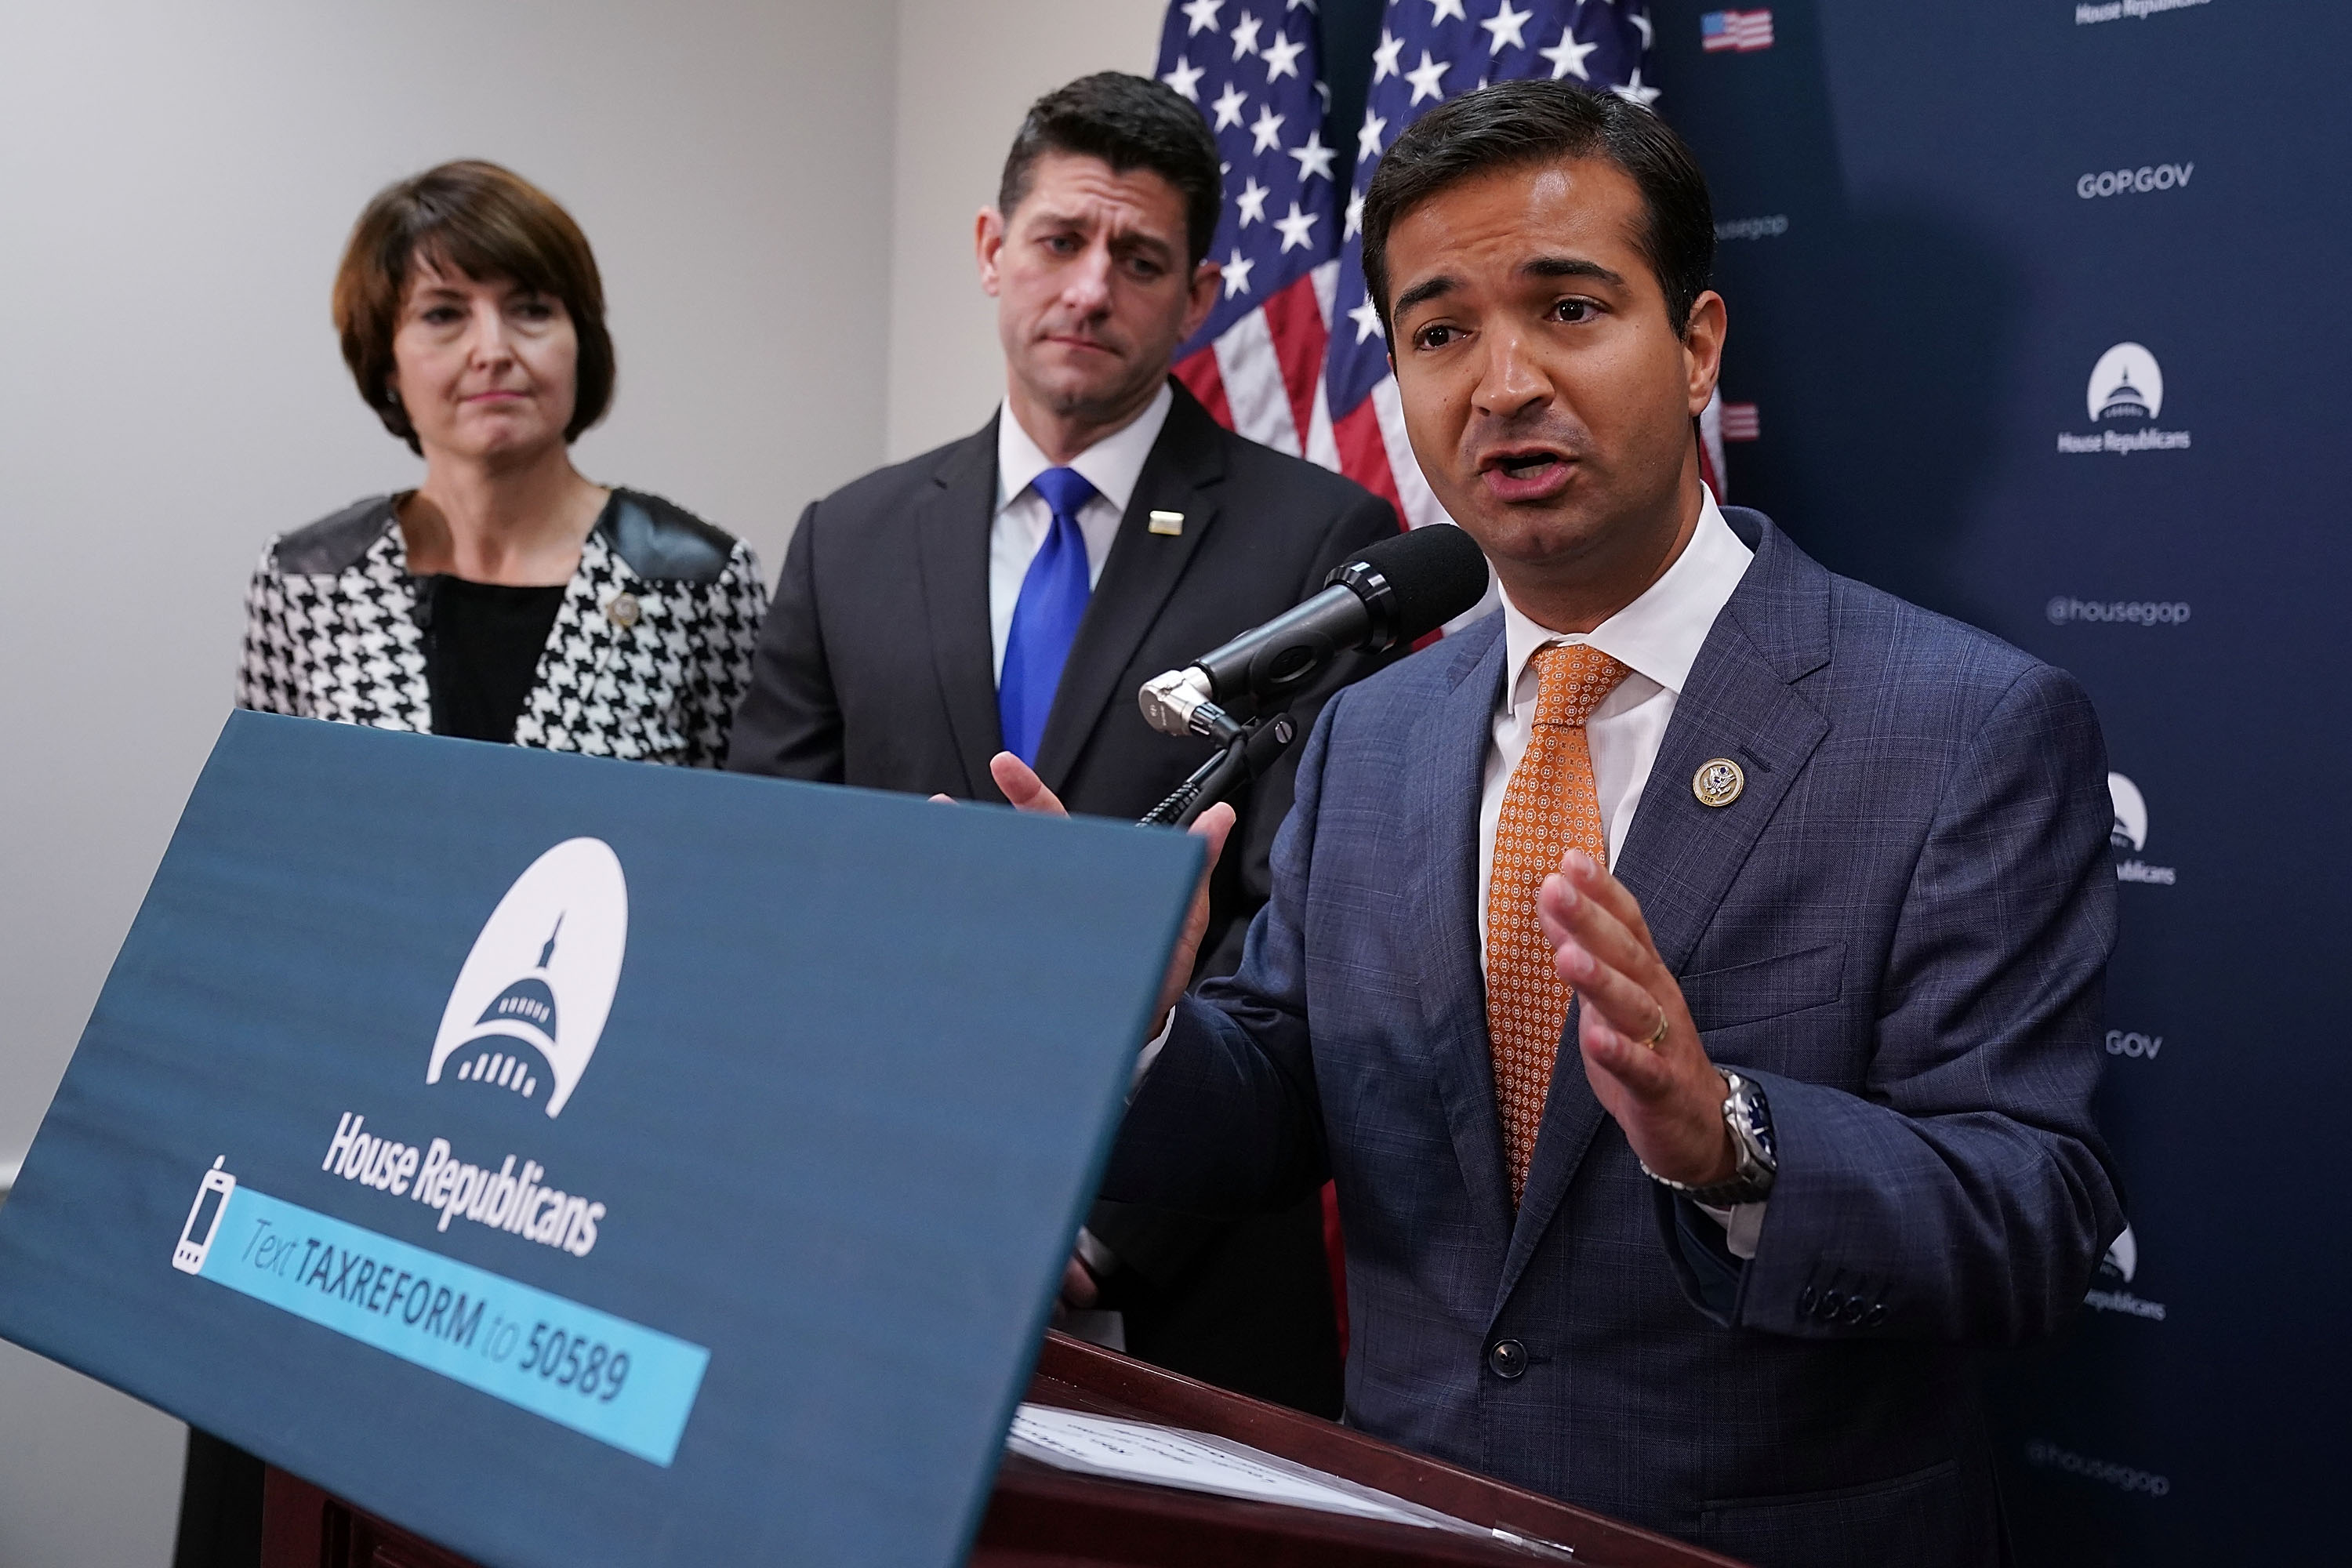 WASHINGTON, DC - OCTOBER 24: Rep. Carlos Curbelo (R-FL) (R) talks with reporters with Speaker of the House Paul Ryan (R-WI) and Rep. Cathy McMorris Rogers (R-WA) following the weekly House Republican Conference meeting at the U.S. Capitol October 24, 2017 in Washington, DC. Ryan and the GOP leadership said that tax cuts and reforms are their priority and they hope to get legislation out of the House by the Thanksgiving holiday. (Photo by Chip Somodevilla/Getty Images)